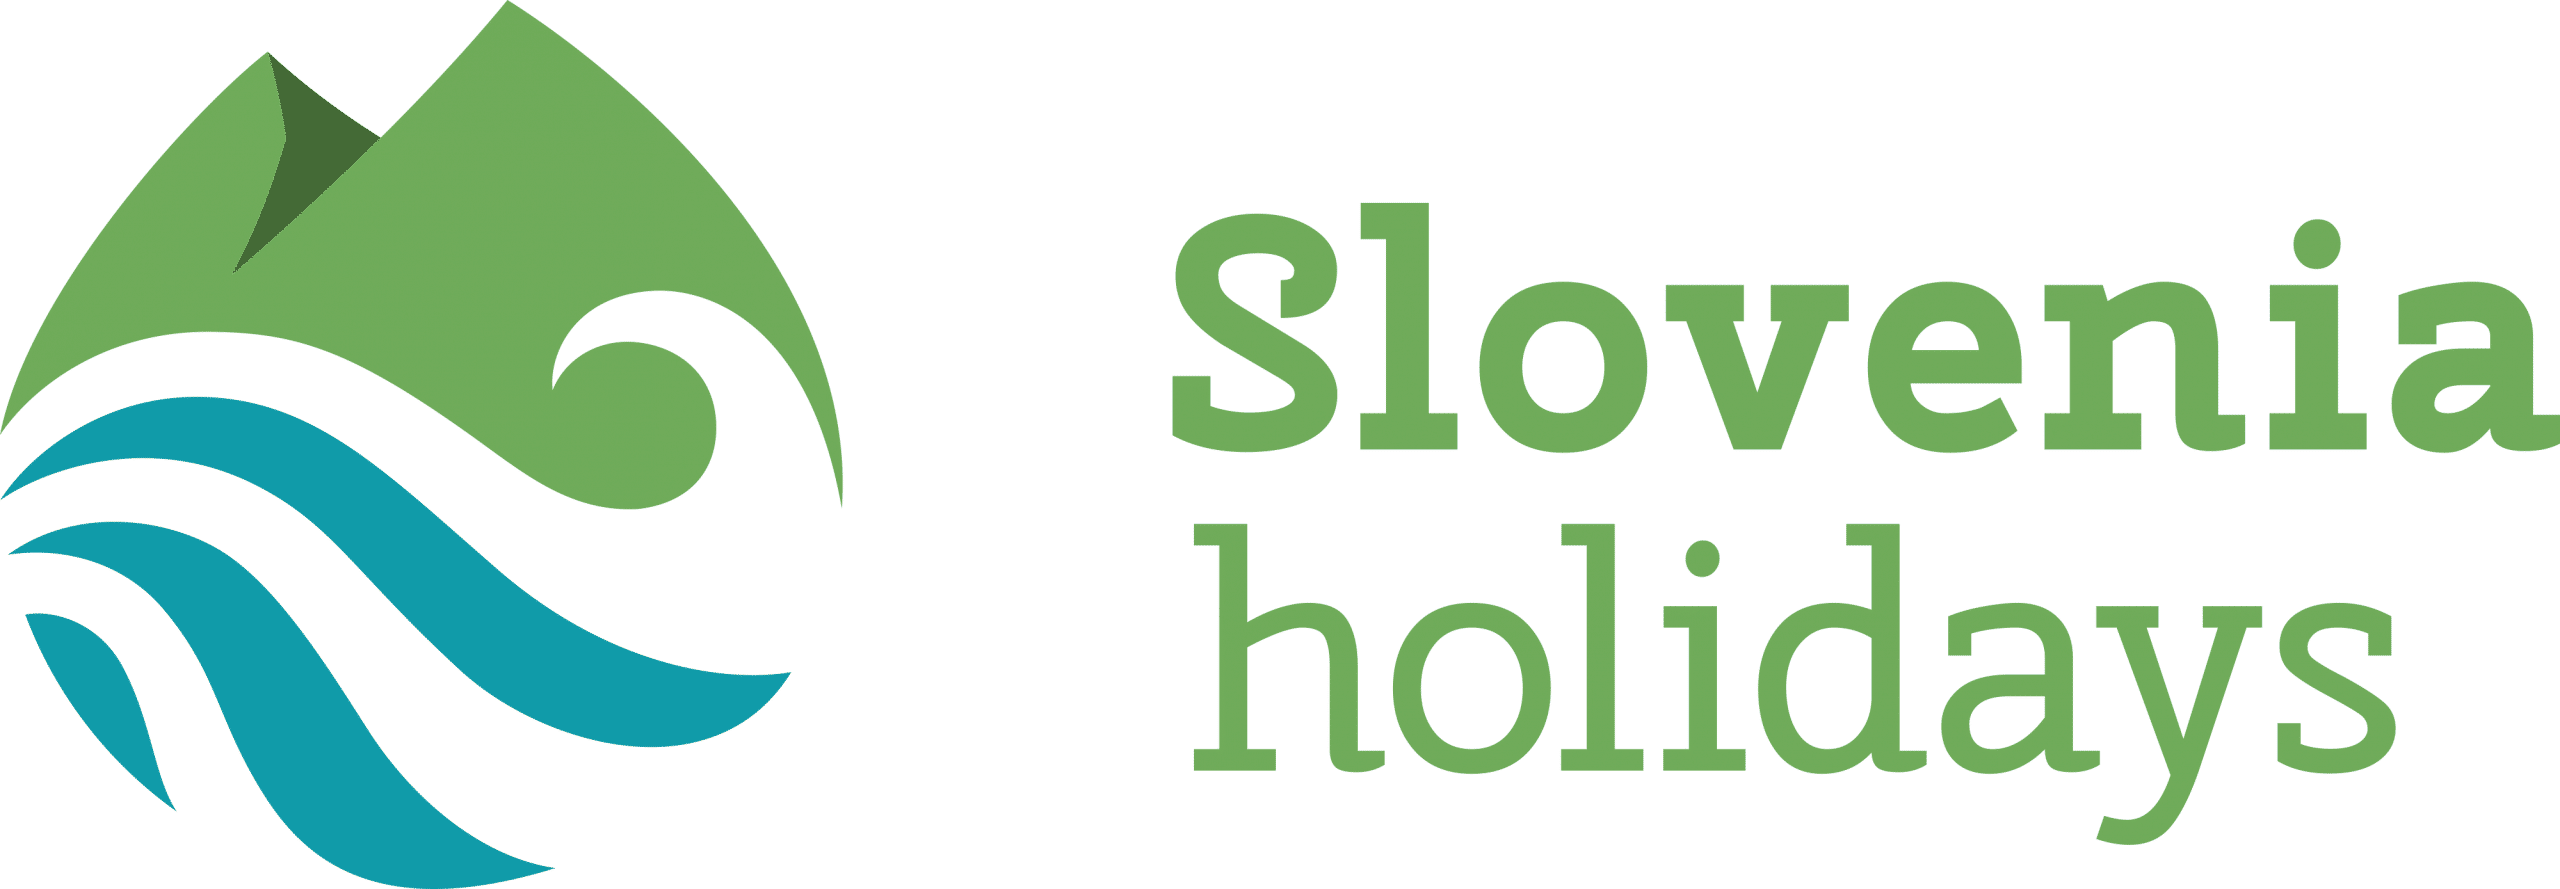 slovenia-holidays-logo-color